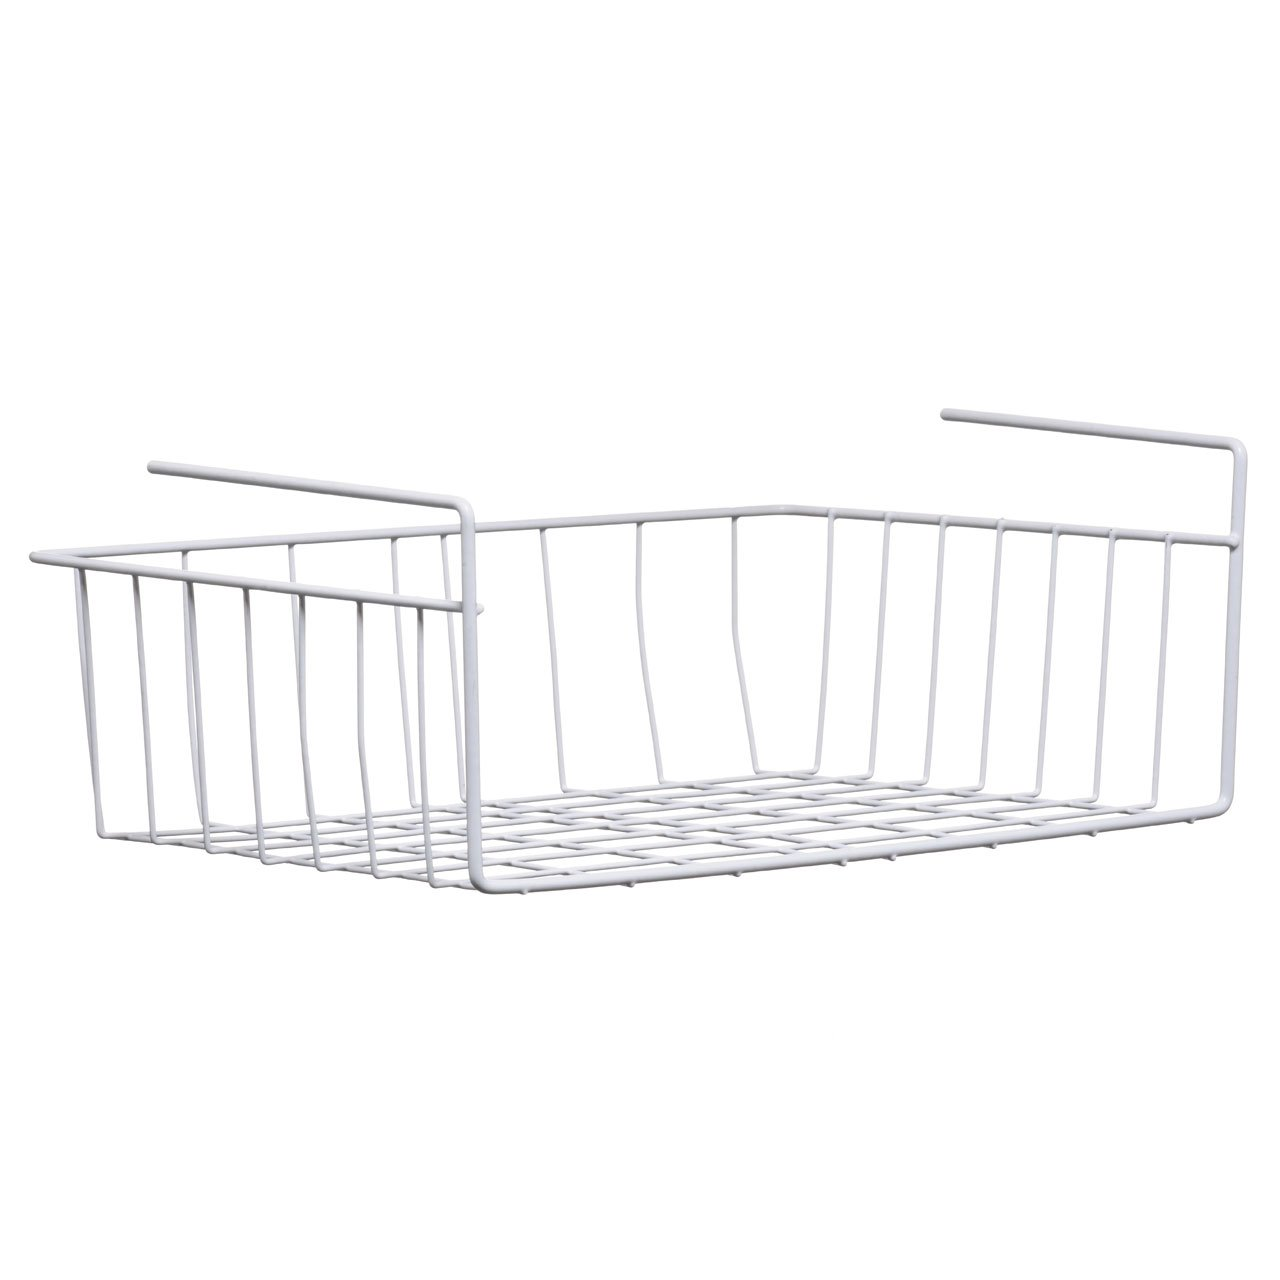 2 x LARGE KITCHEN UNDER SHELF STORAGE RACK HOLDER 39 CM BASKETS UNDER SHELF BASKET